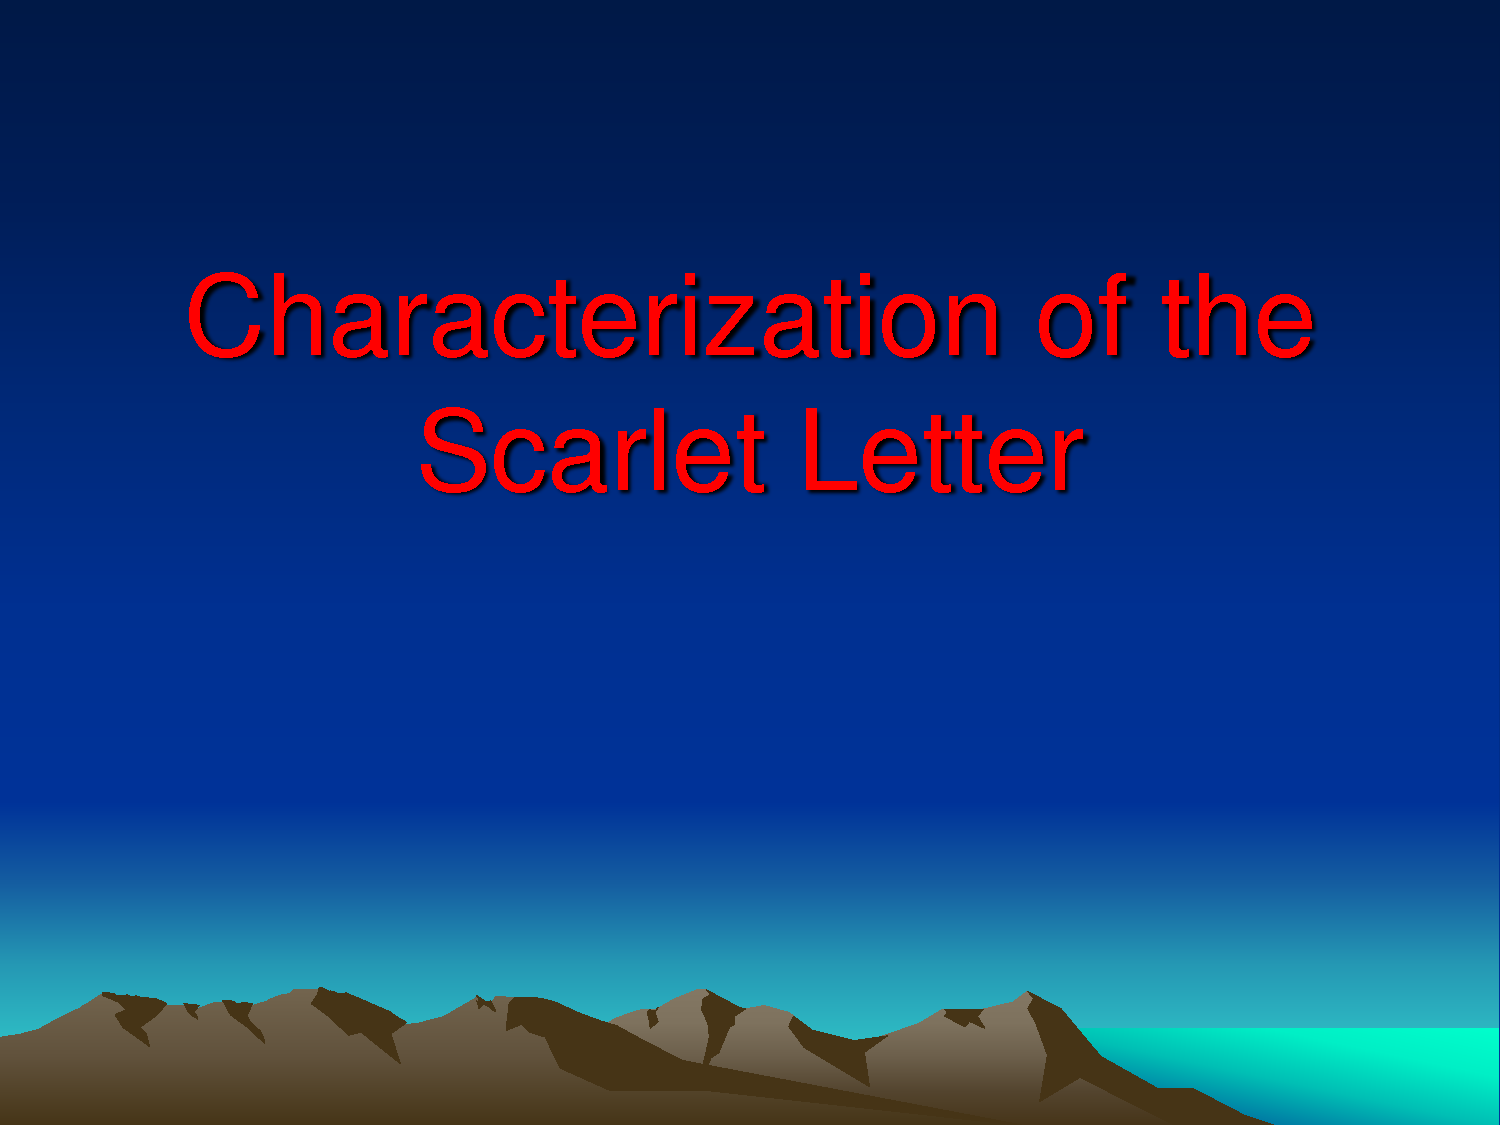 the scarlet letter quotes scarlet letter quotes nature quotesgram 32673